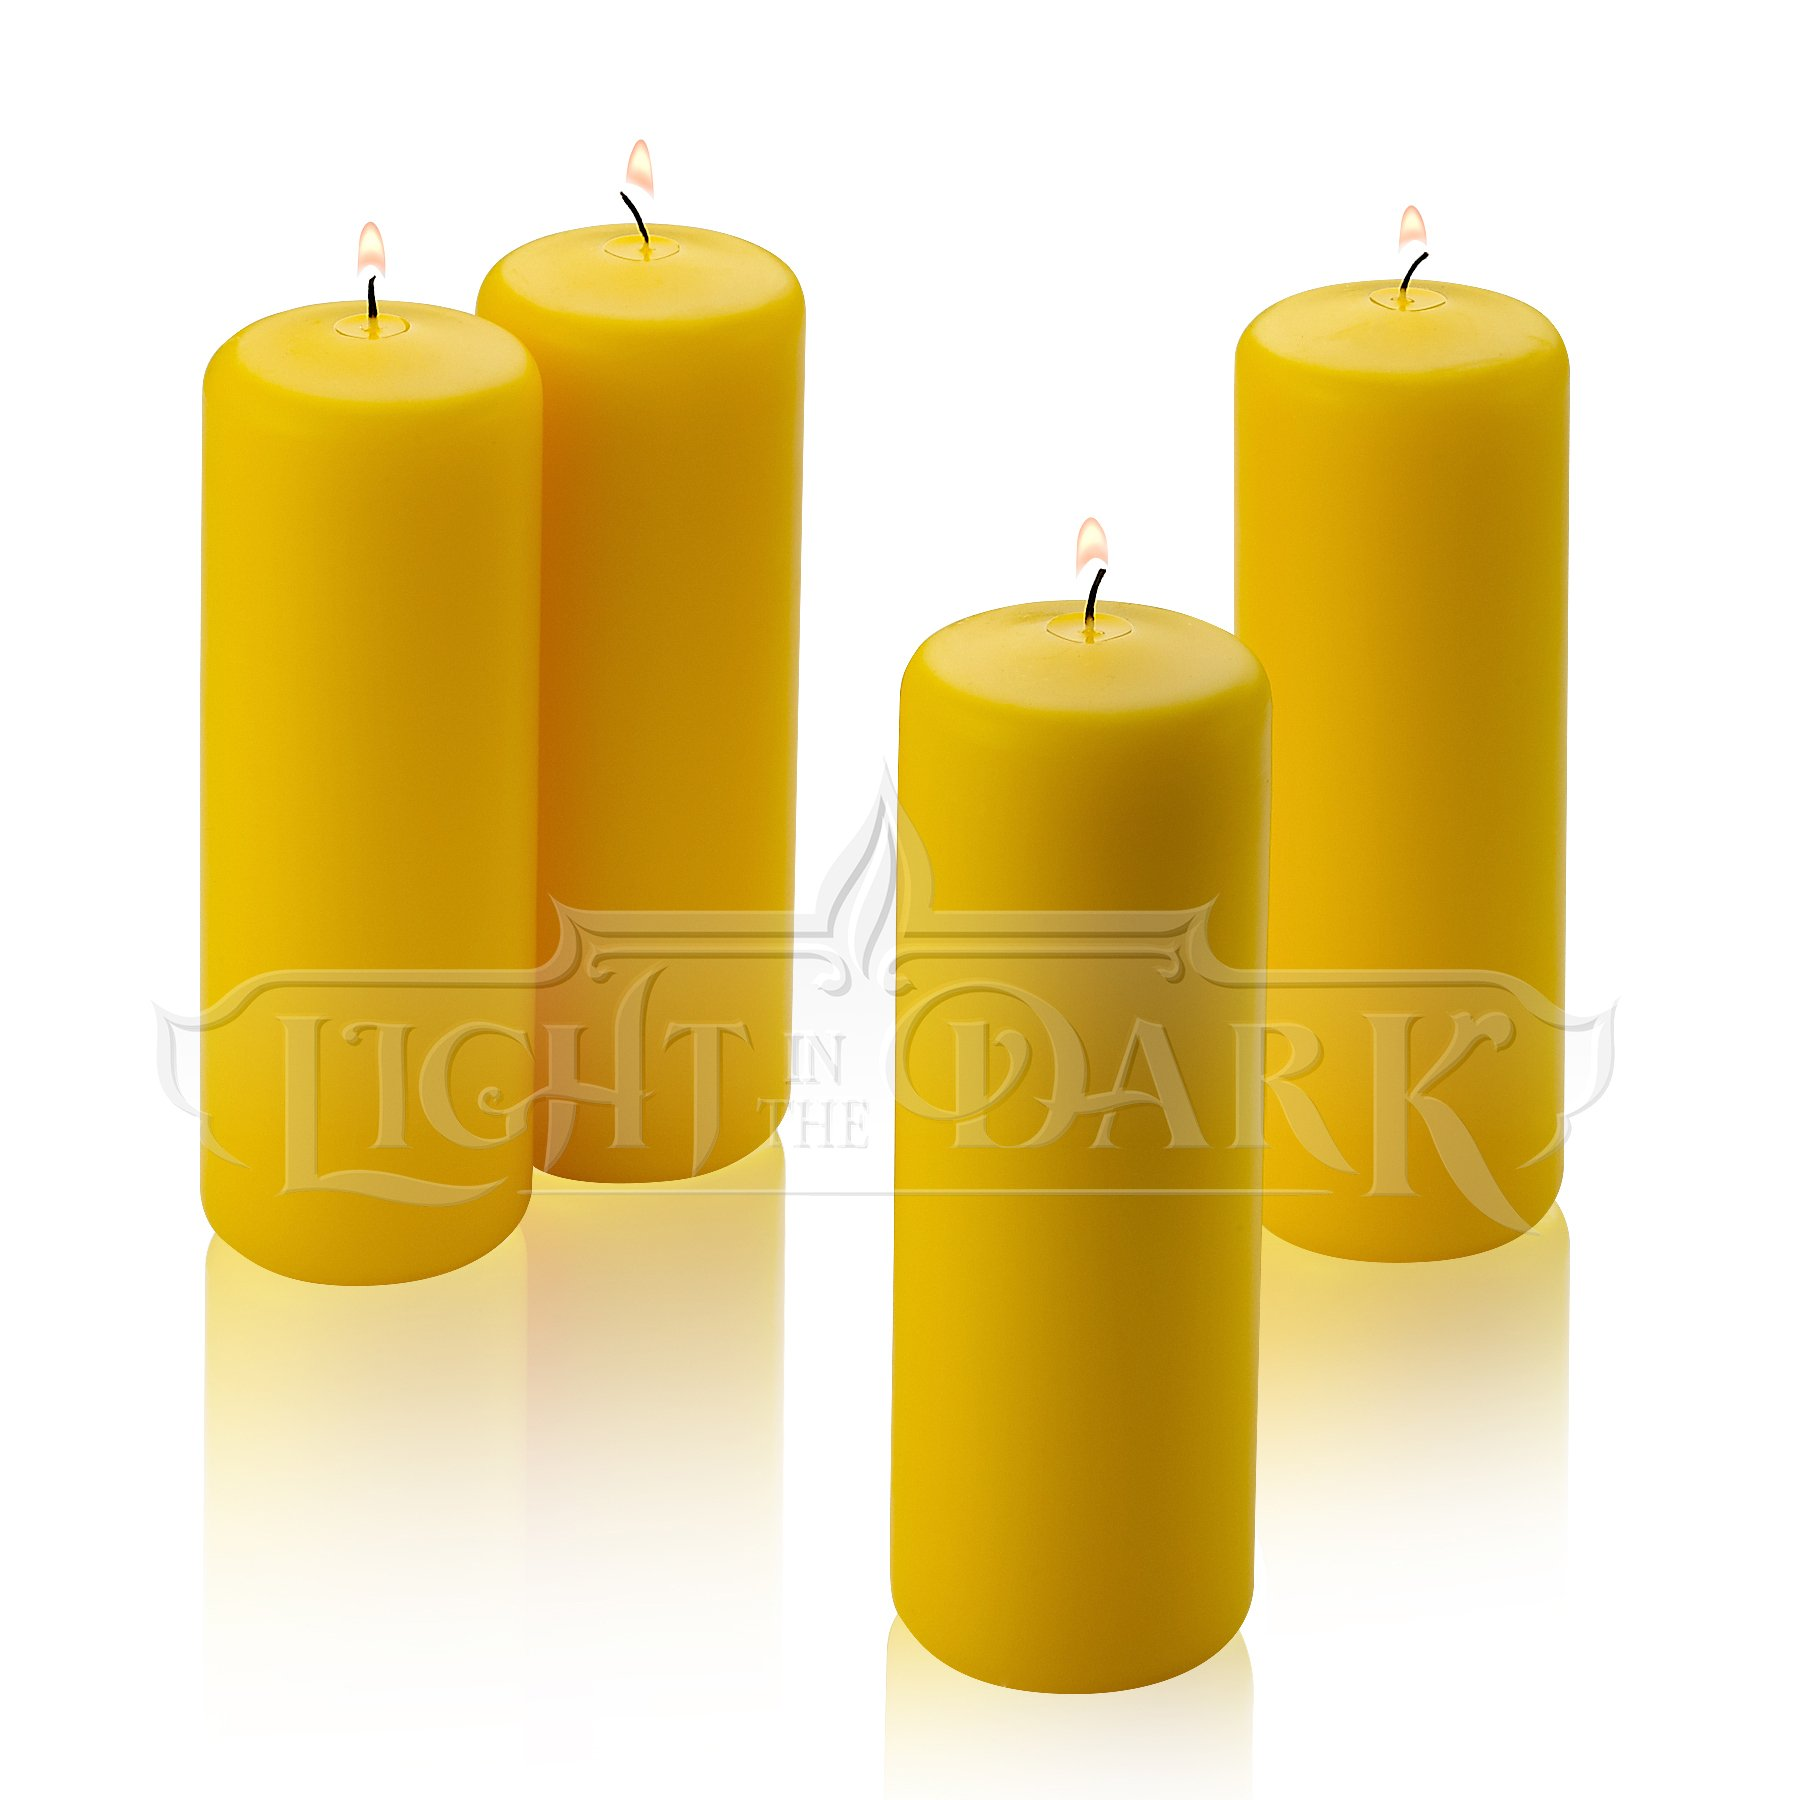 Citronella Pillar Candle - Set of 4 Summer Scented Yellow Citronella Candles - 6 inch Tall, 2 inch Thick - 36 Hour Burn Time for Indoor/Outdoor Use - Made in USA